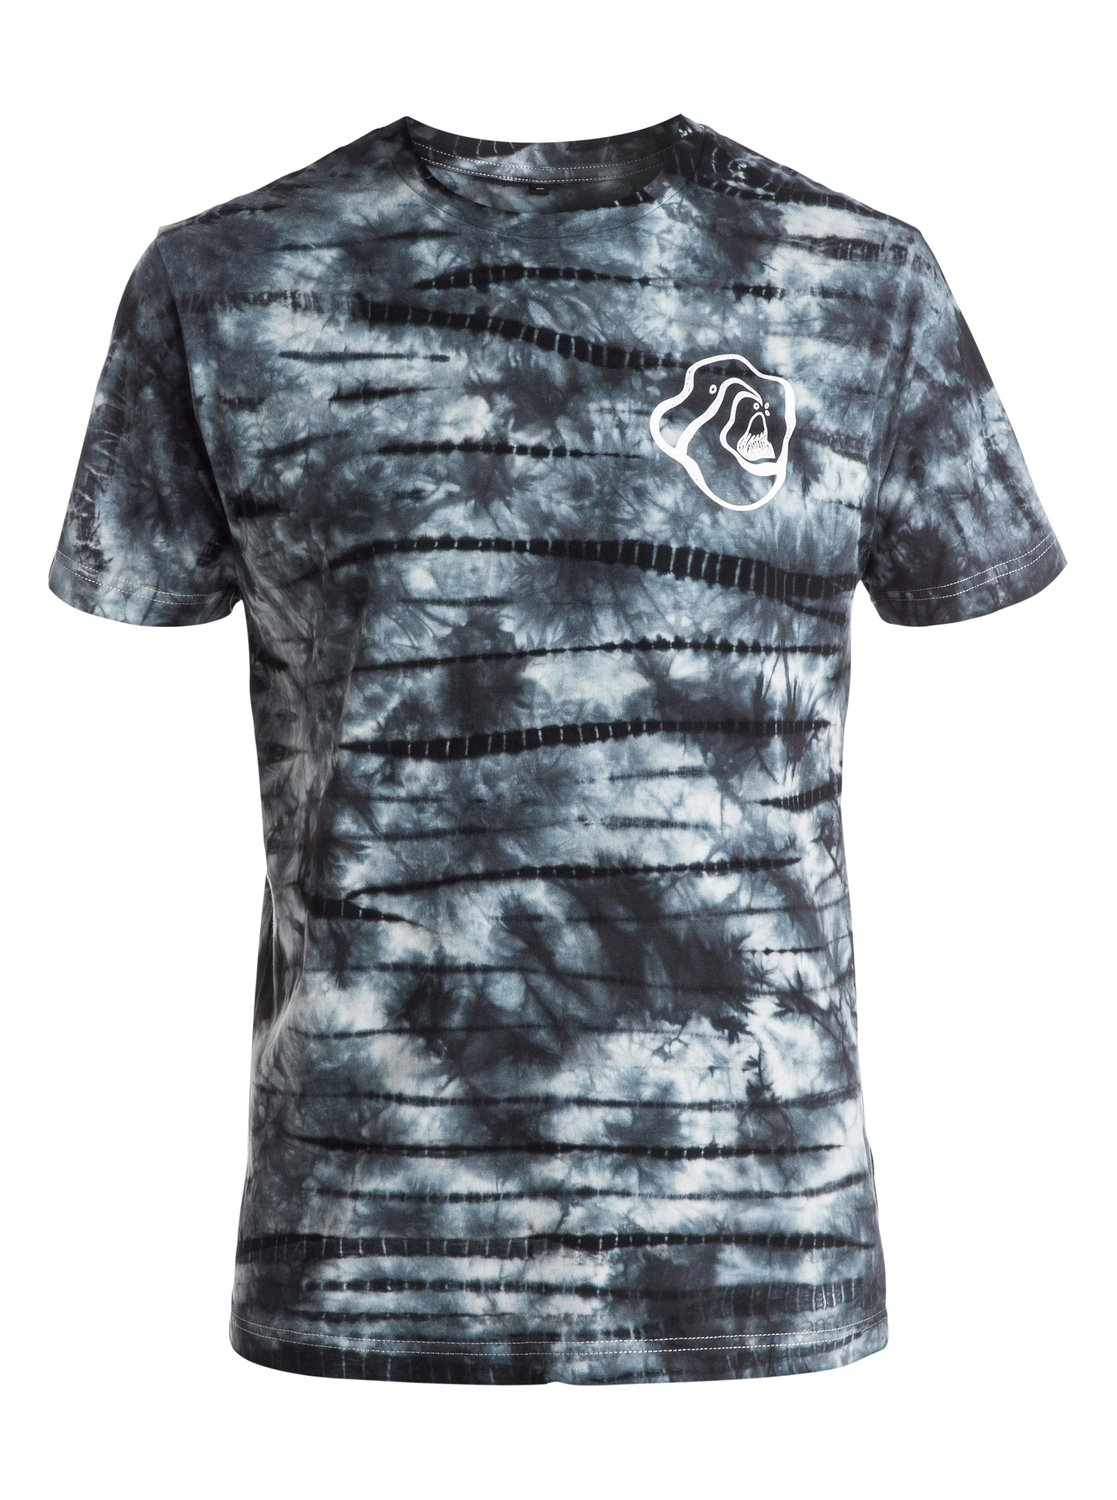 Am Vibes - tee-shirt pour homme - quiksilver